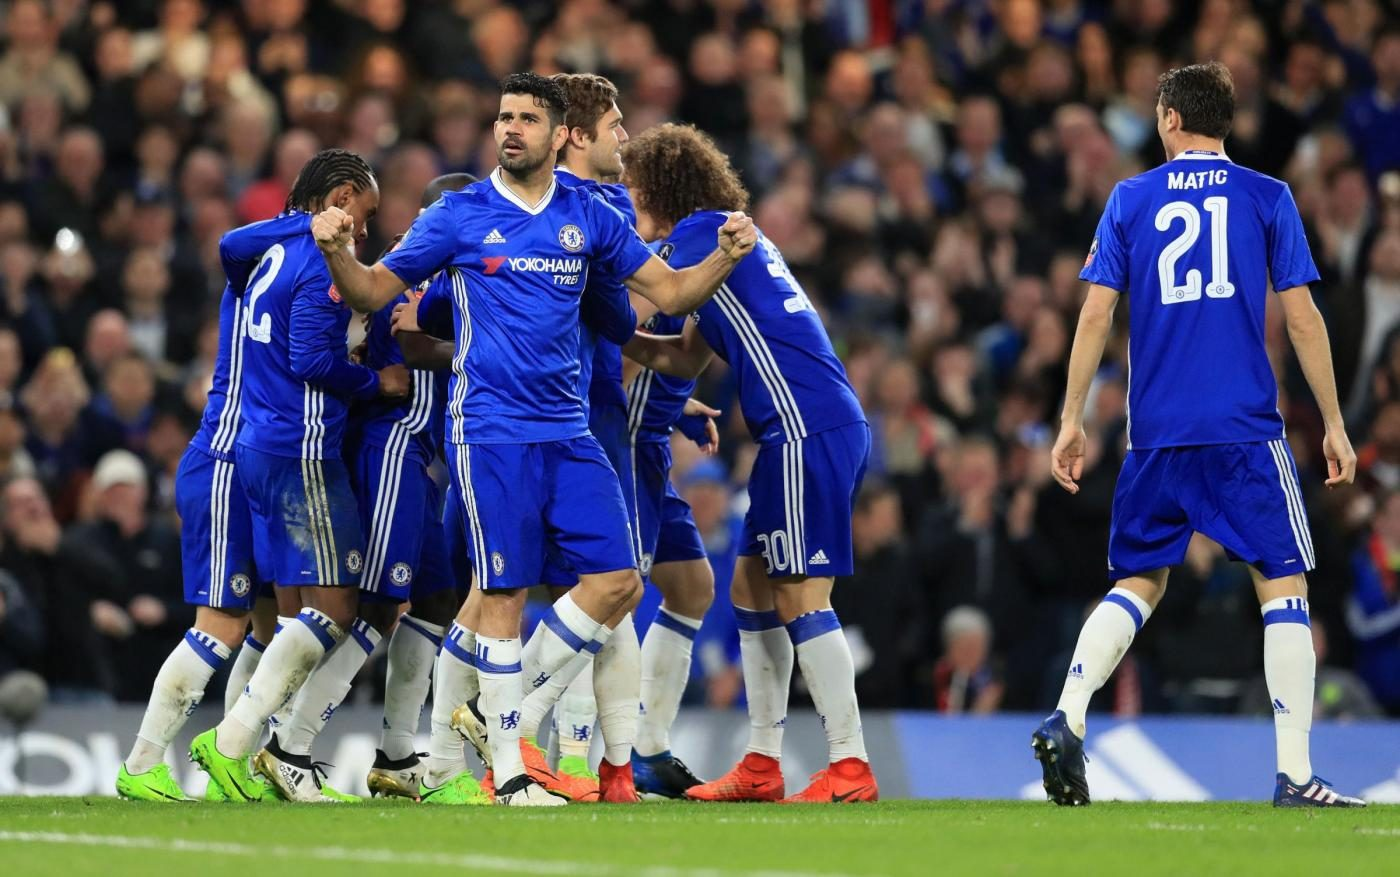 Chelsea Was That A Man: Conte Urla In Faccia A Mourinho, Chelsea In Semifinale Di